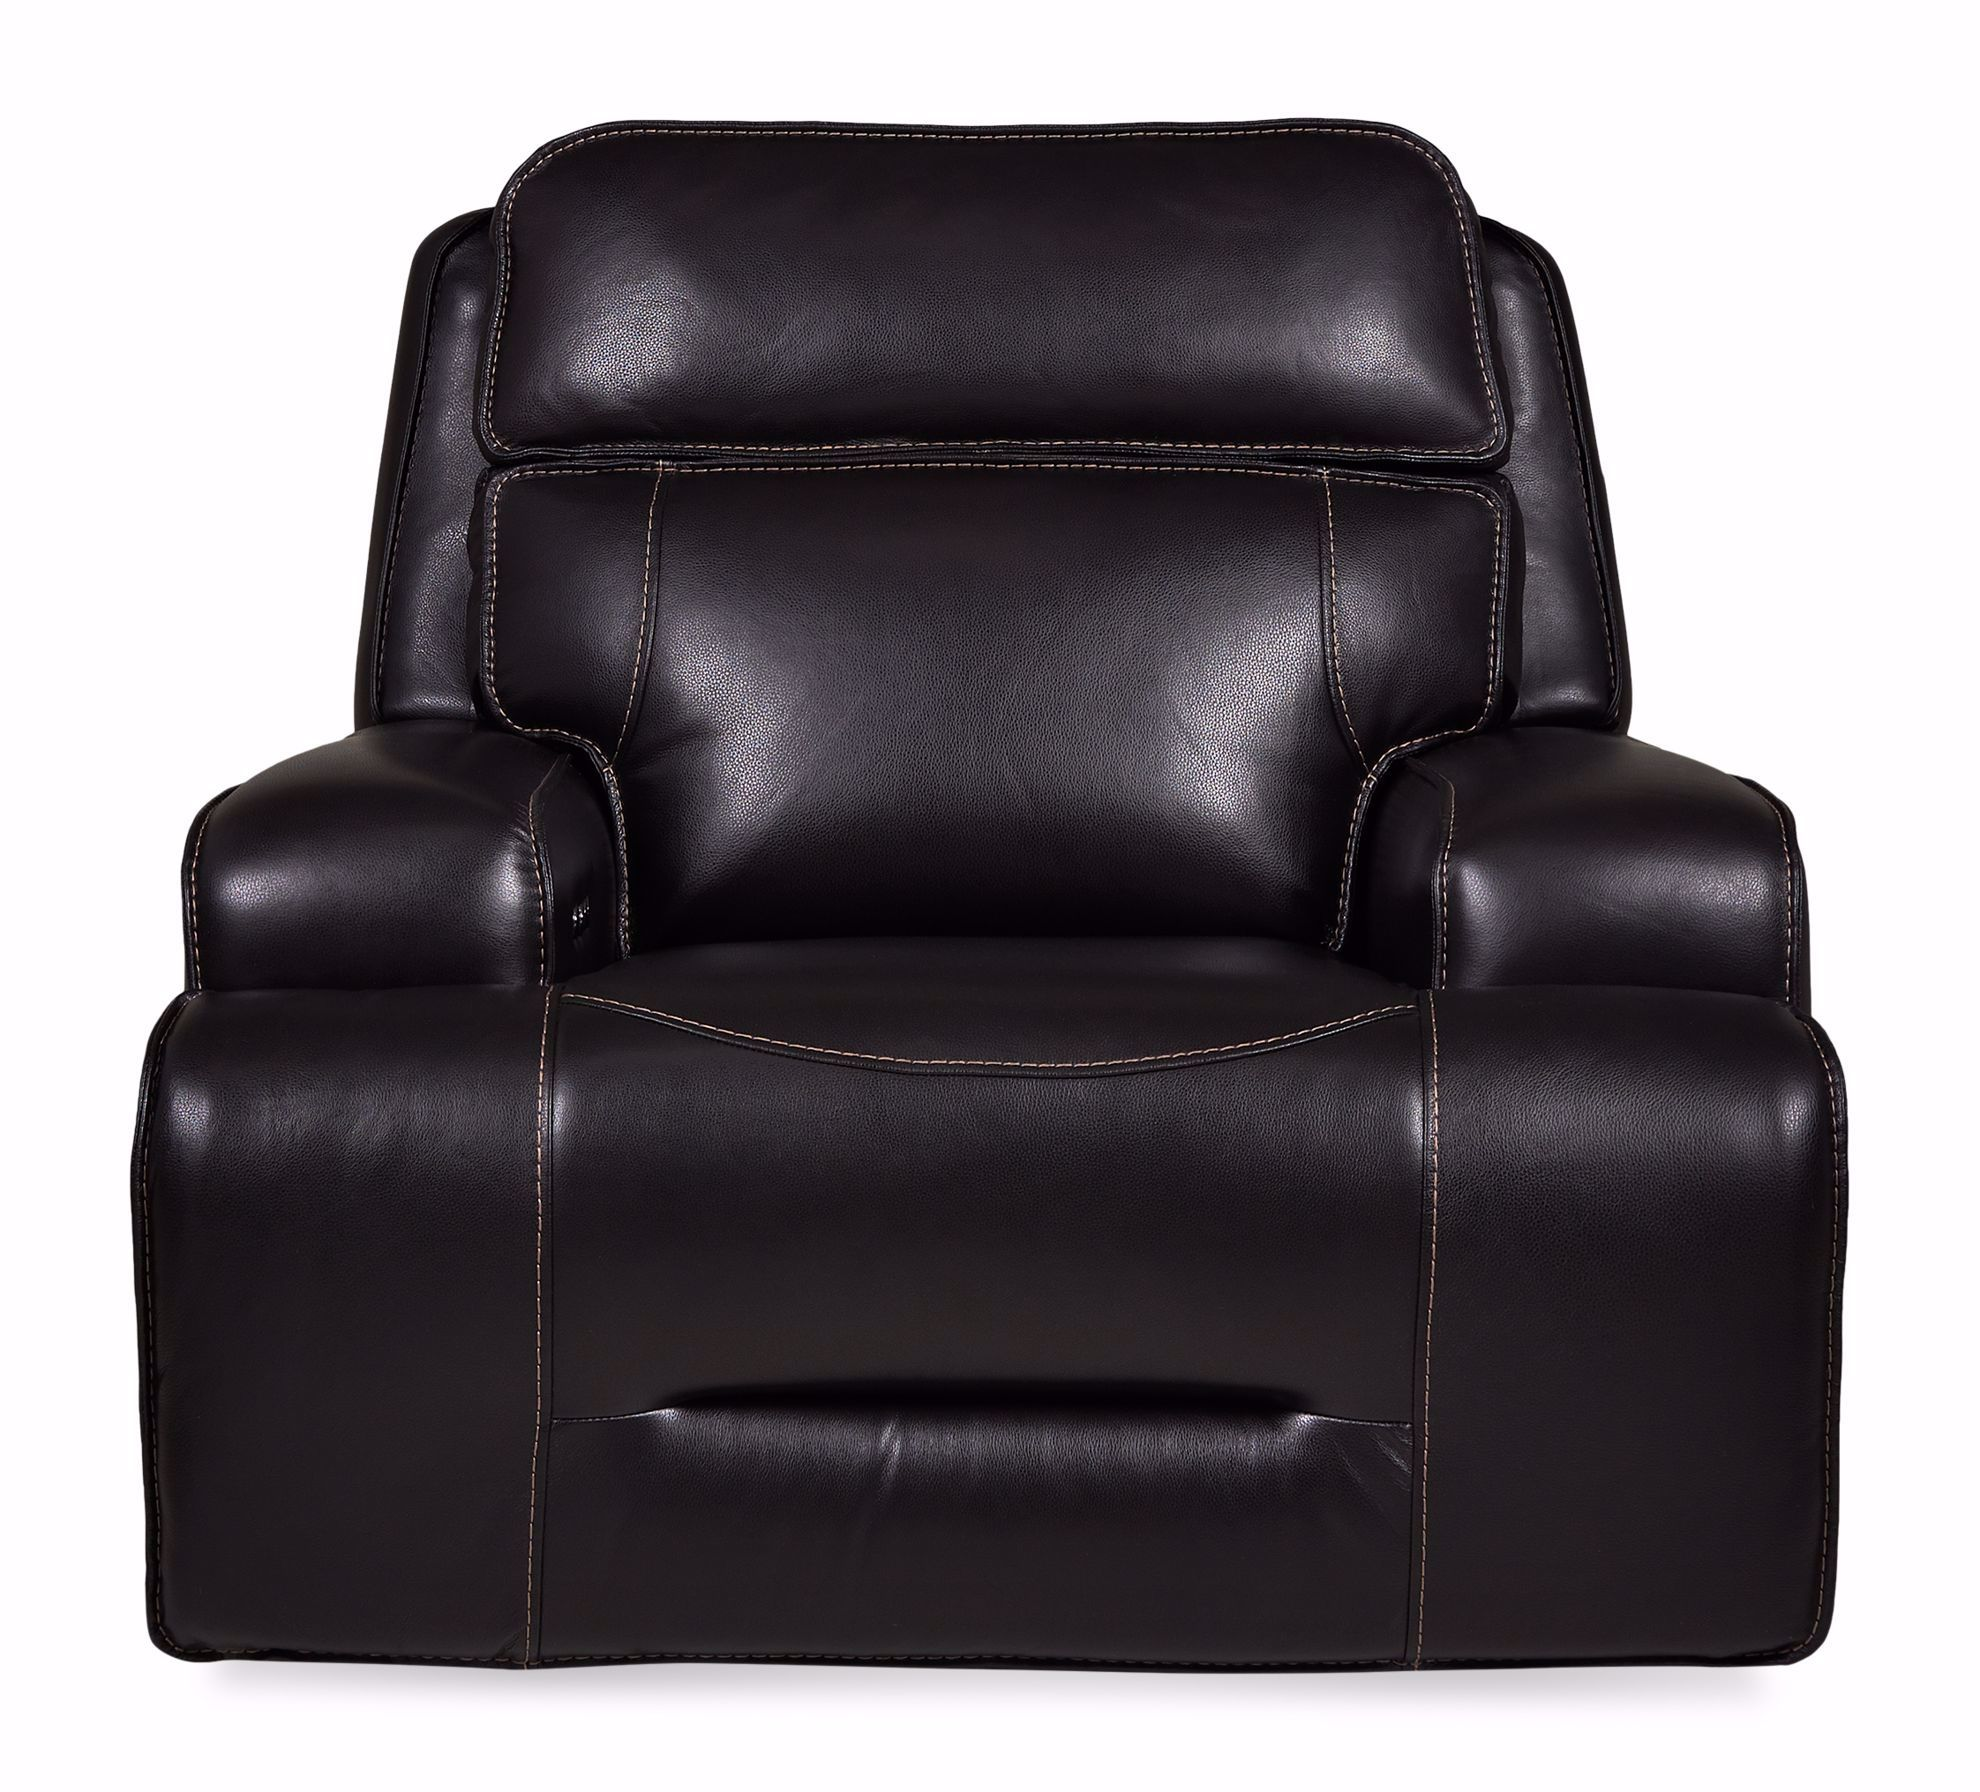 Picture of Sienna Blackberry Power Recliner